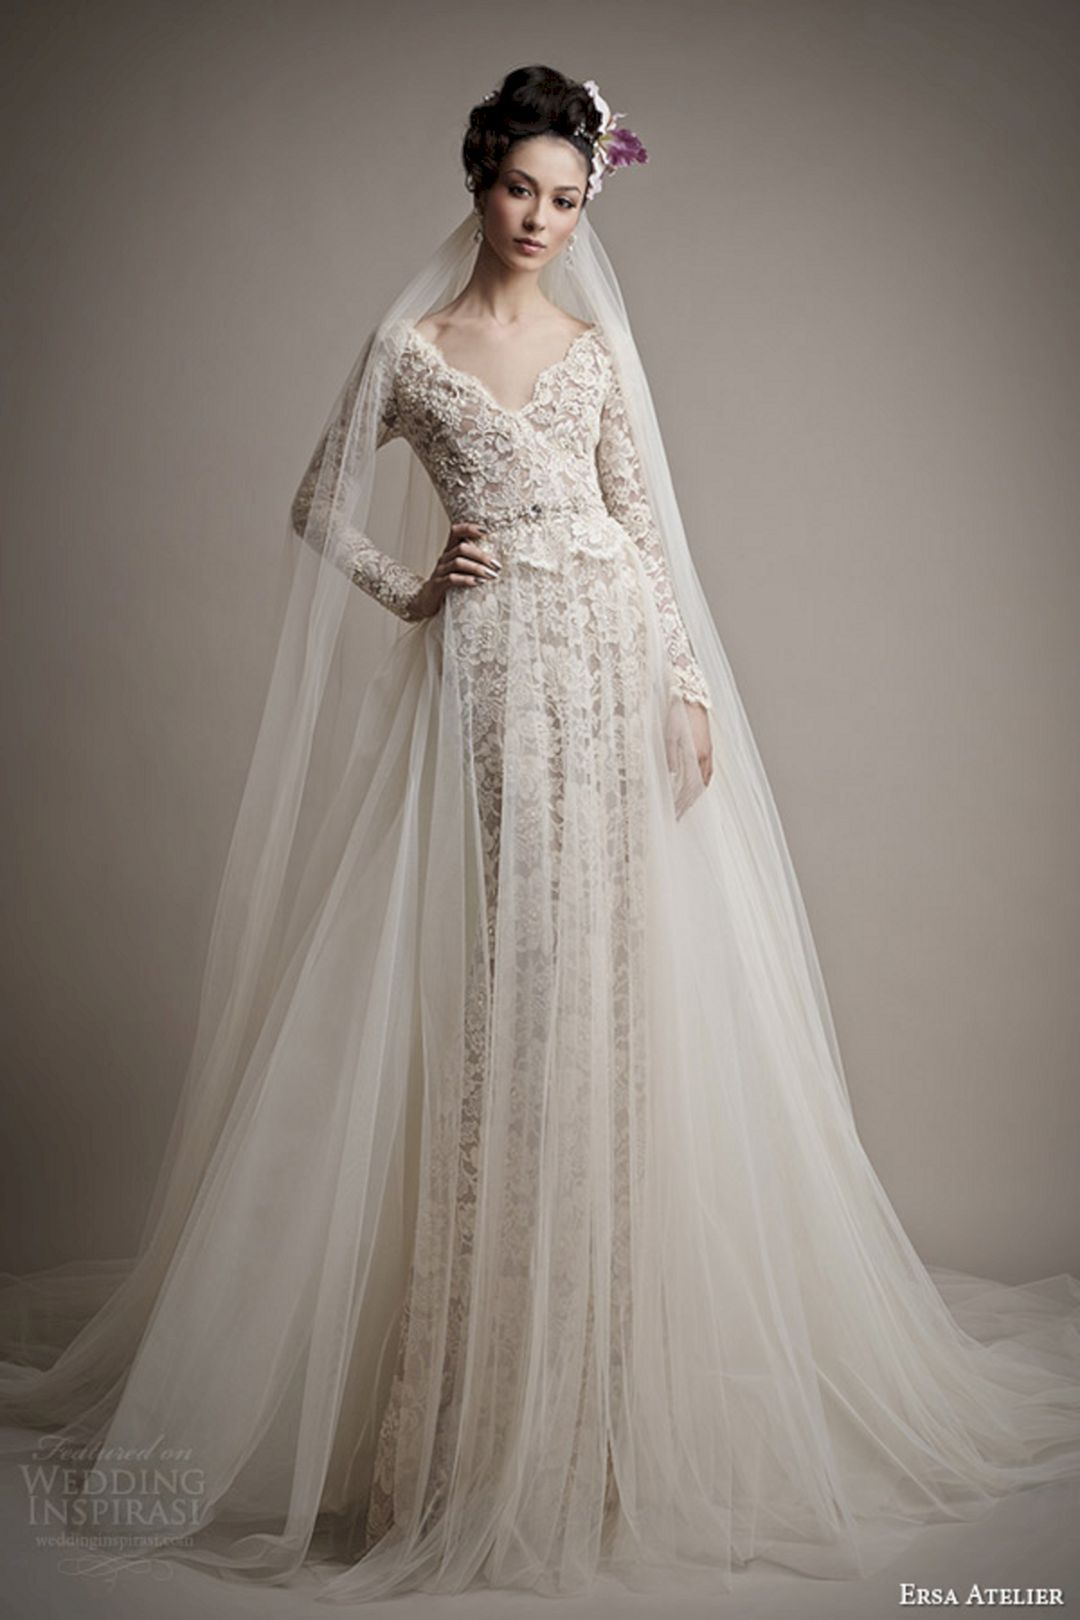 Best wedding dresses of 2018   Best Long Sleeves Wedding Dresses Ideas For Trend  You Need